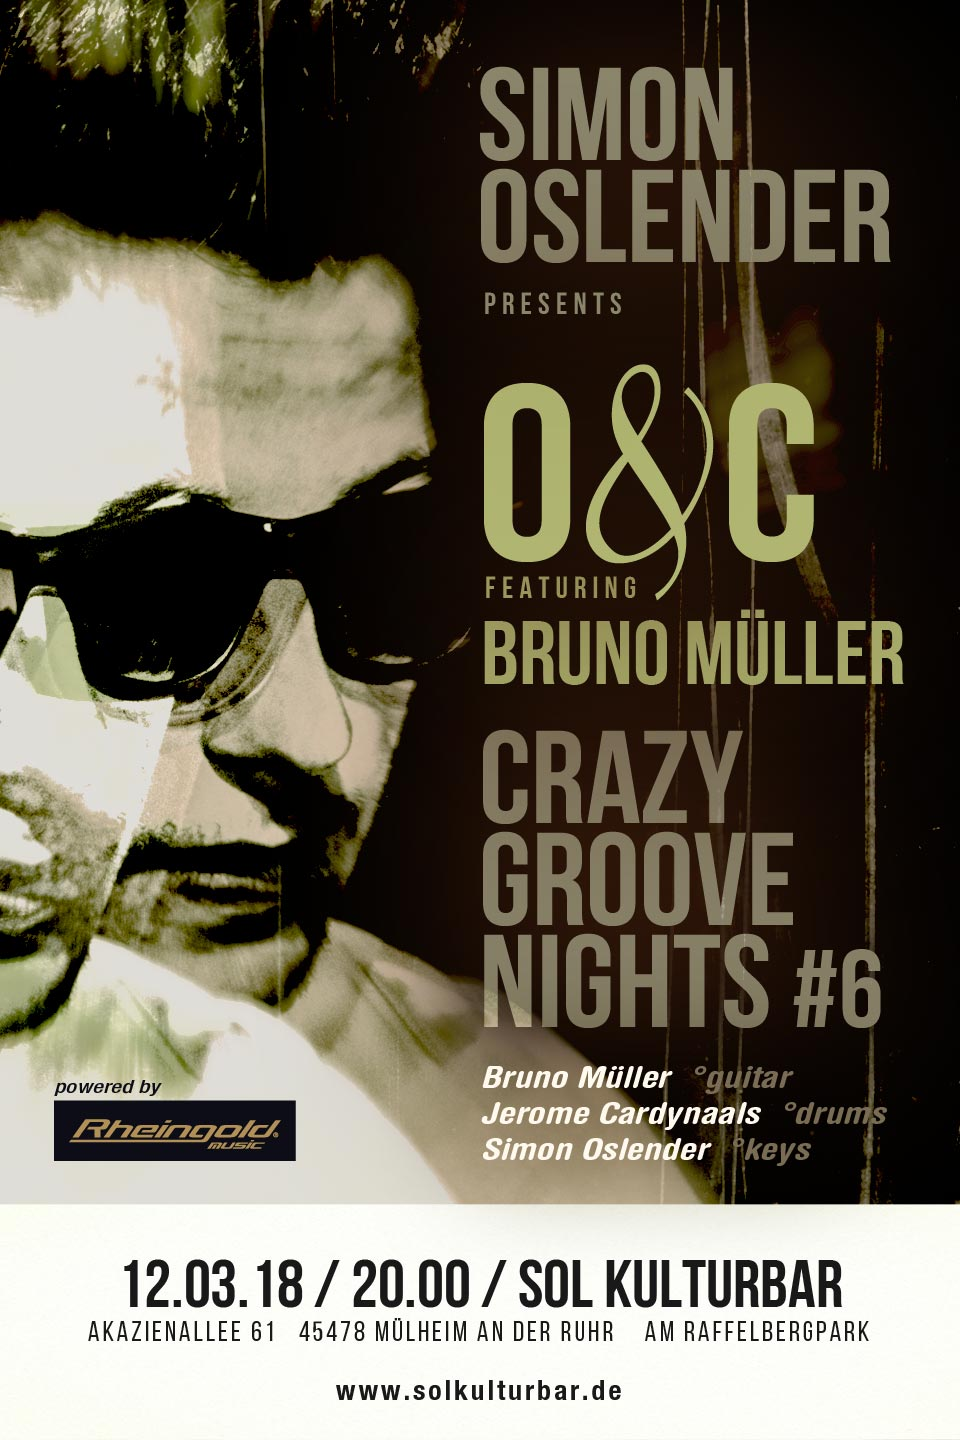 März 2018, Simon Oslender Crazy Groove Nights #6 feat Bruno Müller